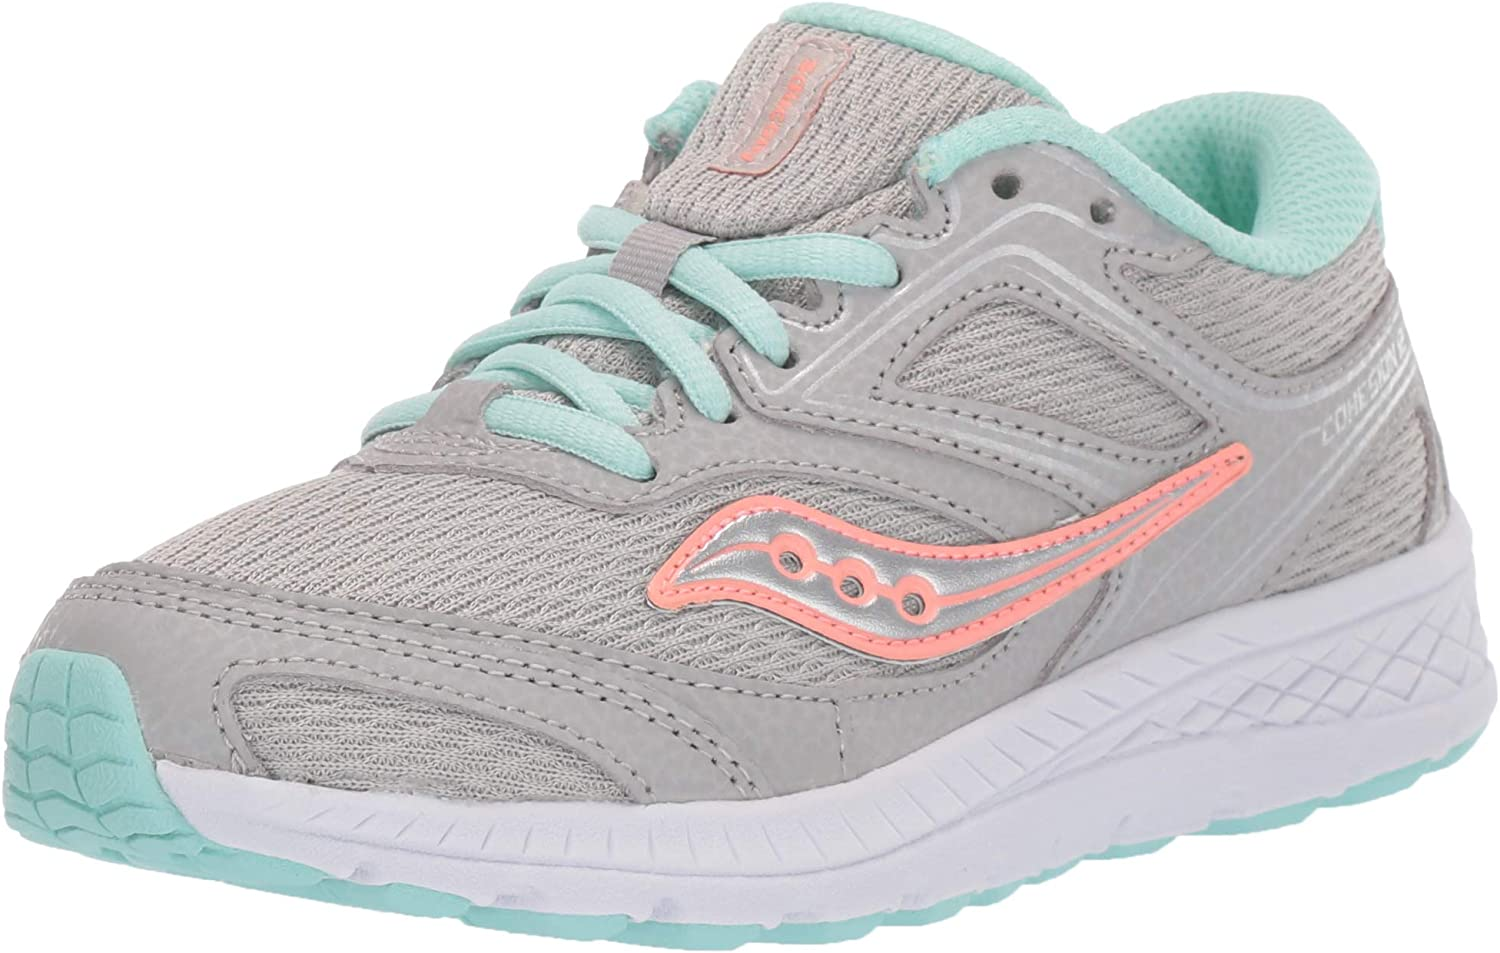 Saucony Girl's Cohesion 12 LTT Sneaker, Grey/Turquoise, 10.5 W US Big Kid